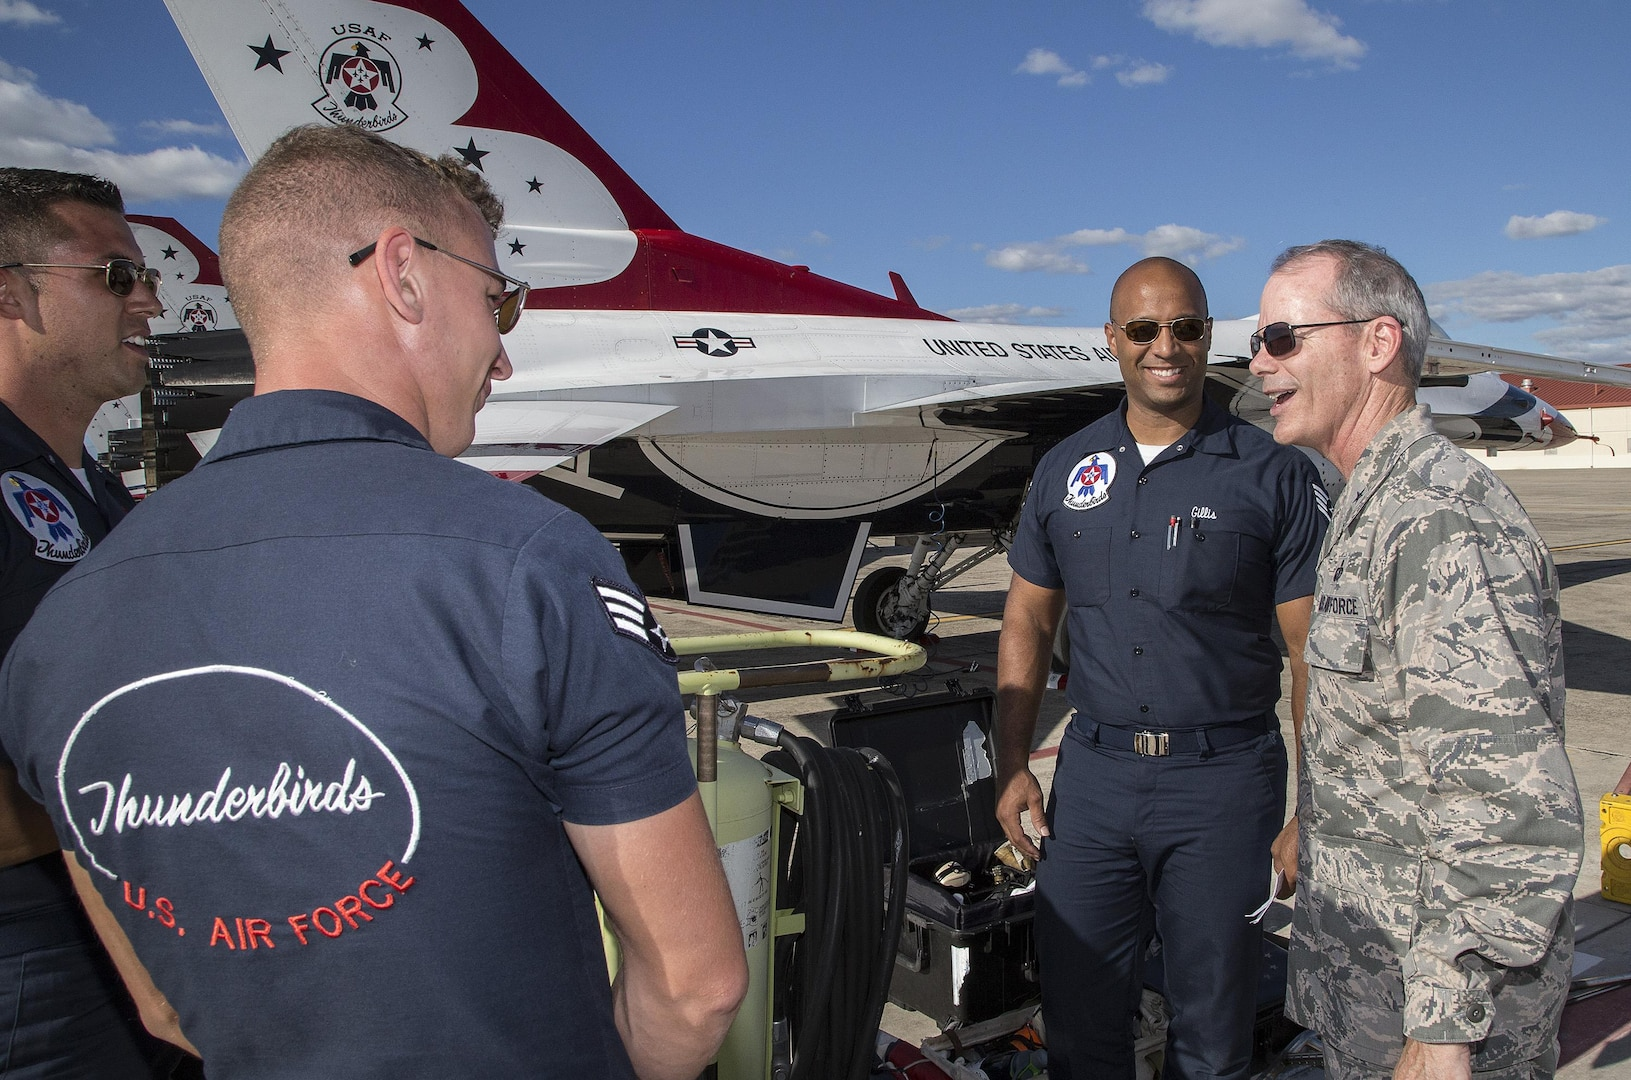 """Brig. Gen. Bob LaBrutta, 502nd Air Base Wing and Joint Base San Antonio commander, visits with U.S. Air Force Air Demonstration Squadron """"Thunderbirds"""" team members Oct. 26, 2015 at Joint Base San Antonio-Randolph, Texas. The Thunderbirds are performing in the 2015 Air Show and Open House to be held at JBSA- Randolph Oct. 31 and Nov. 1. (U.S. Air Force photo by Johnny Saldivar/Released)"""